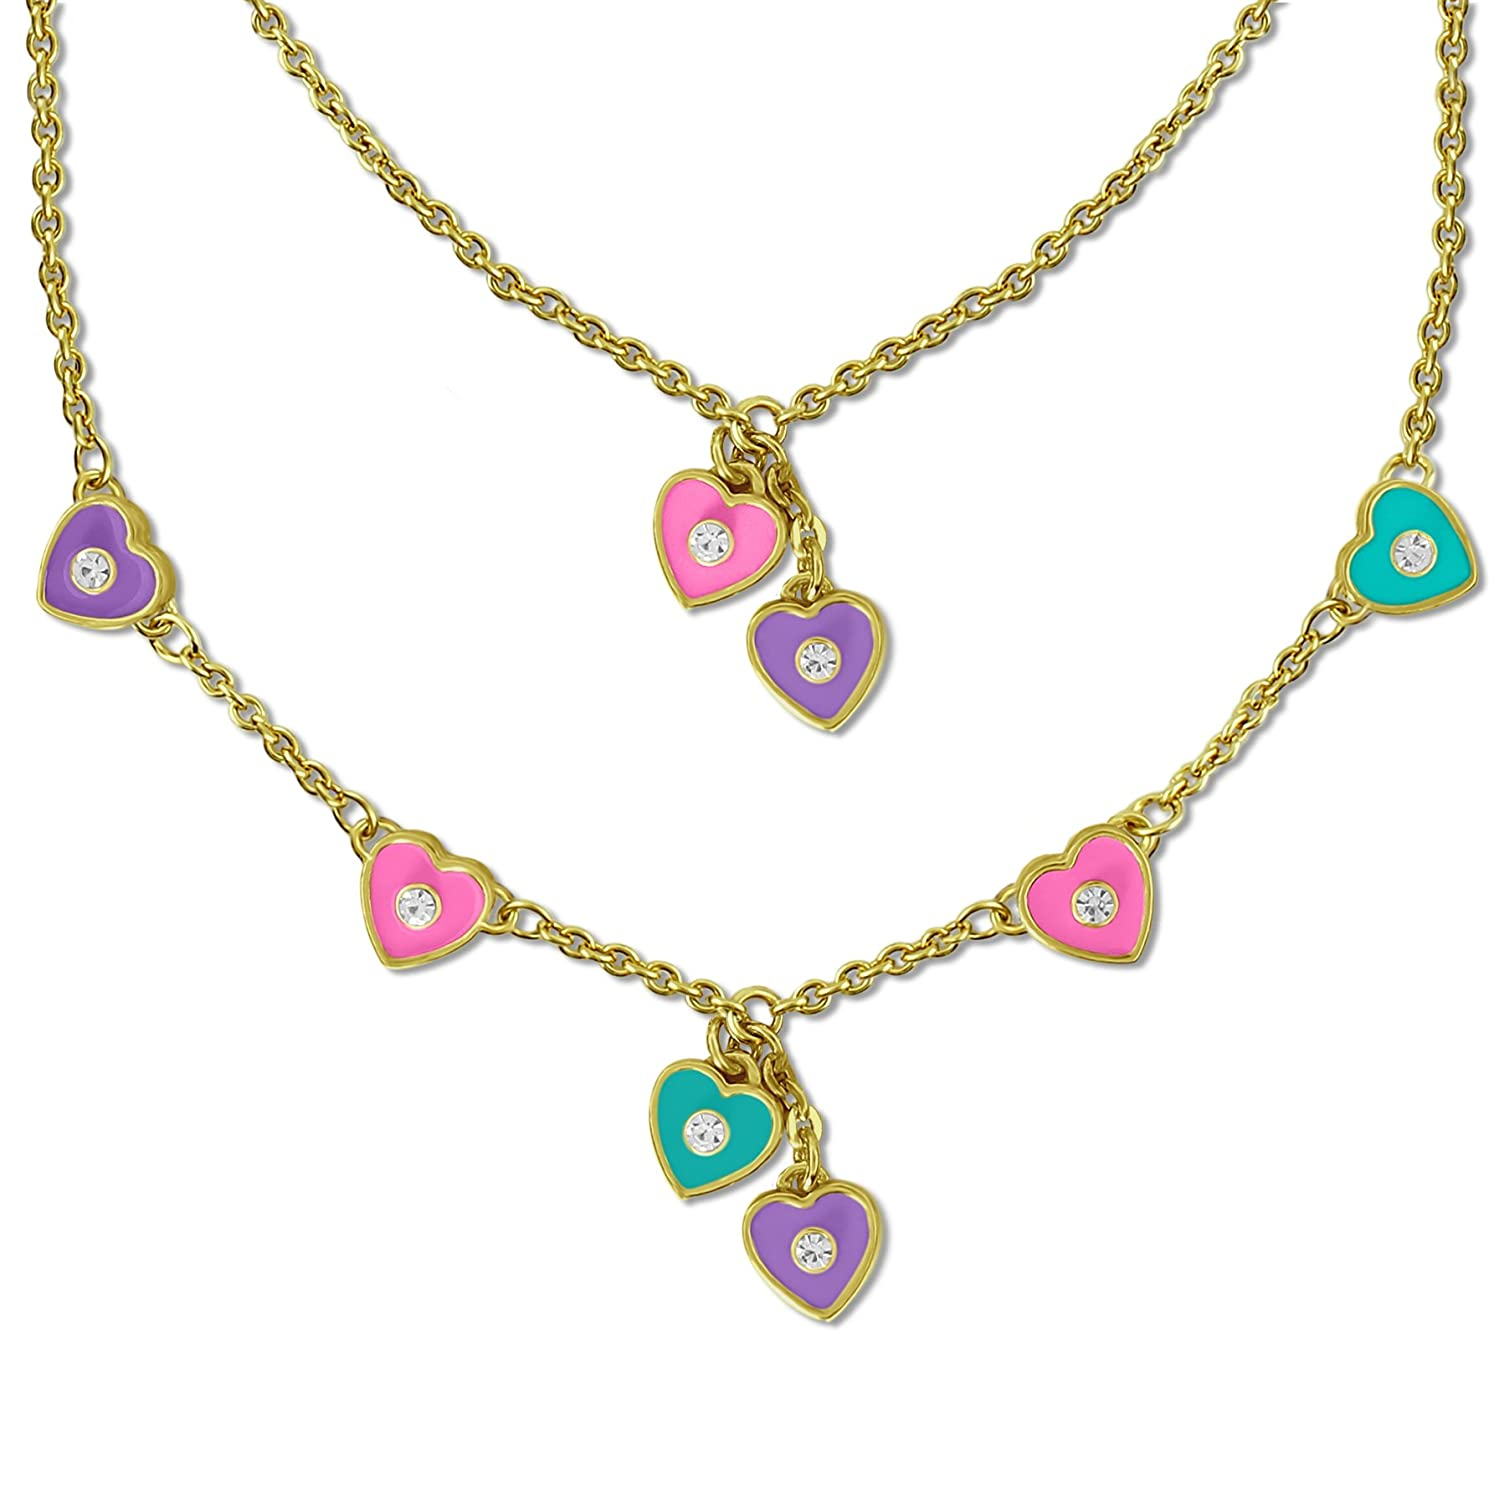 Set of 2 Necklaces | American Girl Doll Accessories Charm Necklace ...